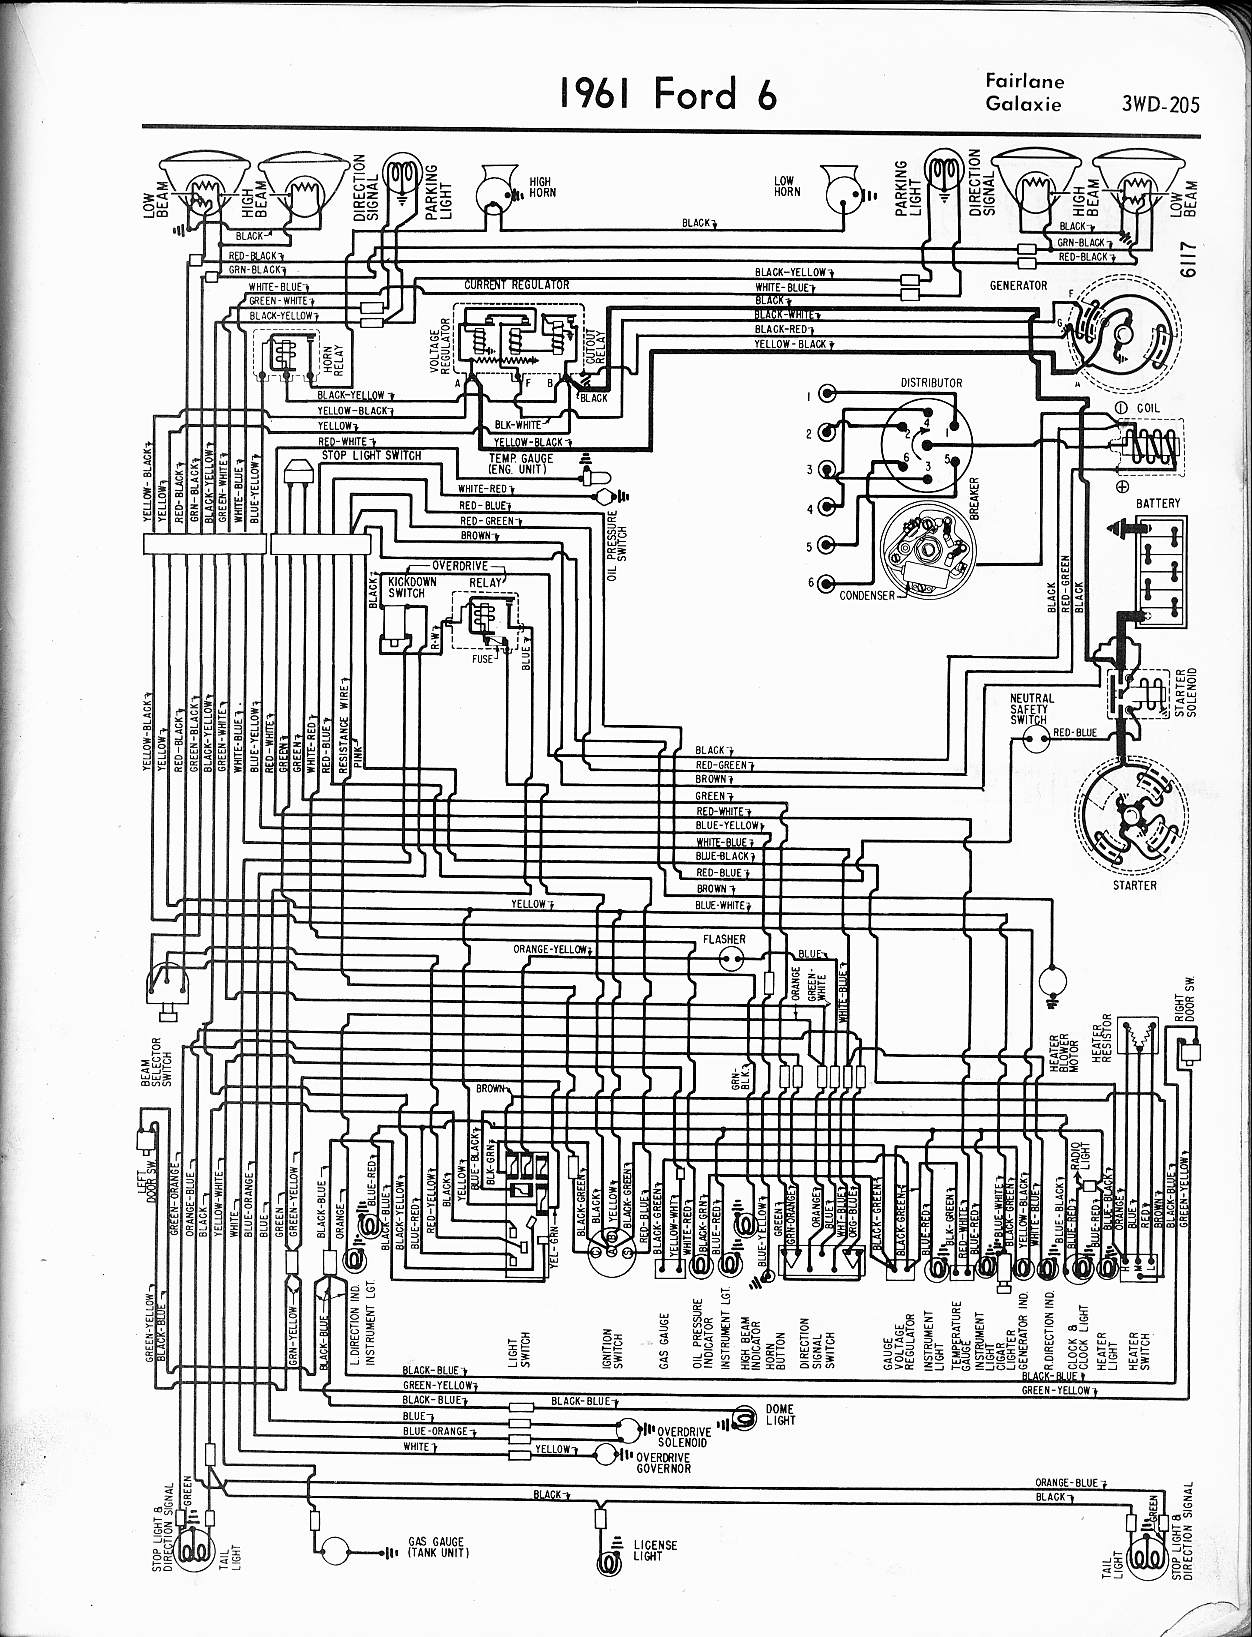 MWire5765 205 wiring diagram model a ford the wiring diagram readingrat net Ford E 350 Wiring Diagrams at love-stories.co